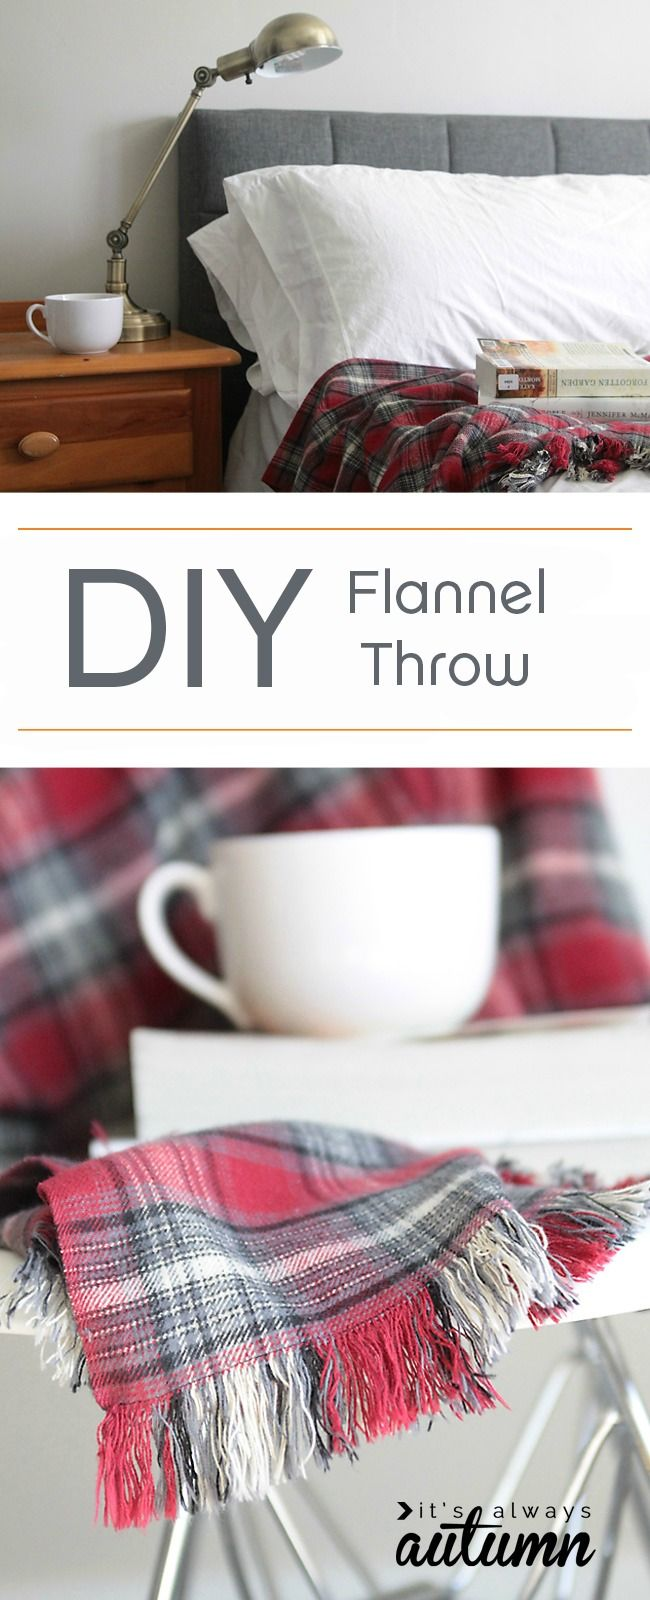 easy DIY fringed flannel throw great gift idea  Flannels Cozy and